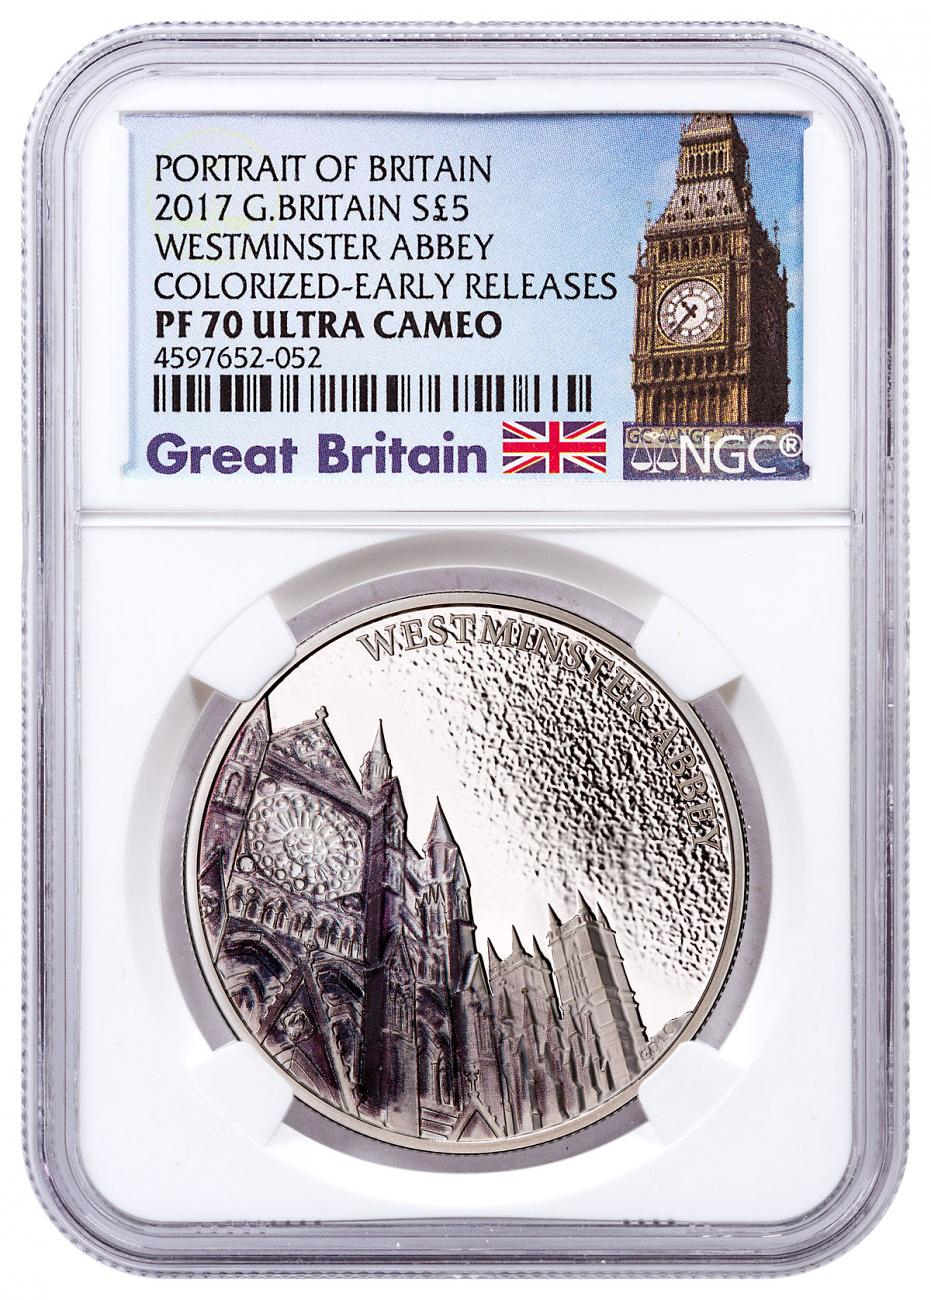 2017 Great Britain Portrait of Britain - Westminster Abbey Silver Colorized Proof £5 Coin NGC PF70 UC ER Exclusive Big Ben Label